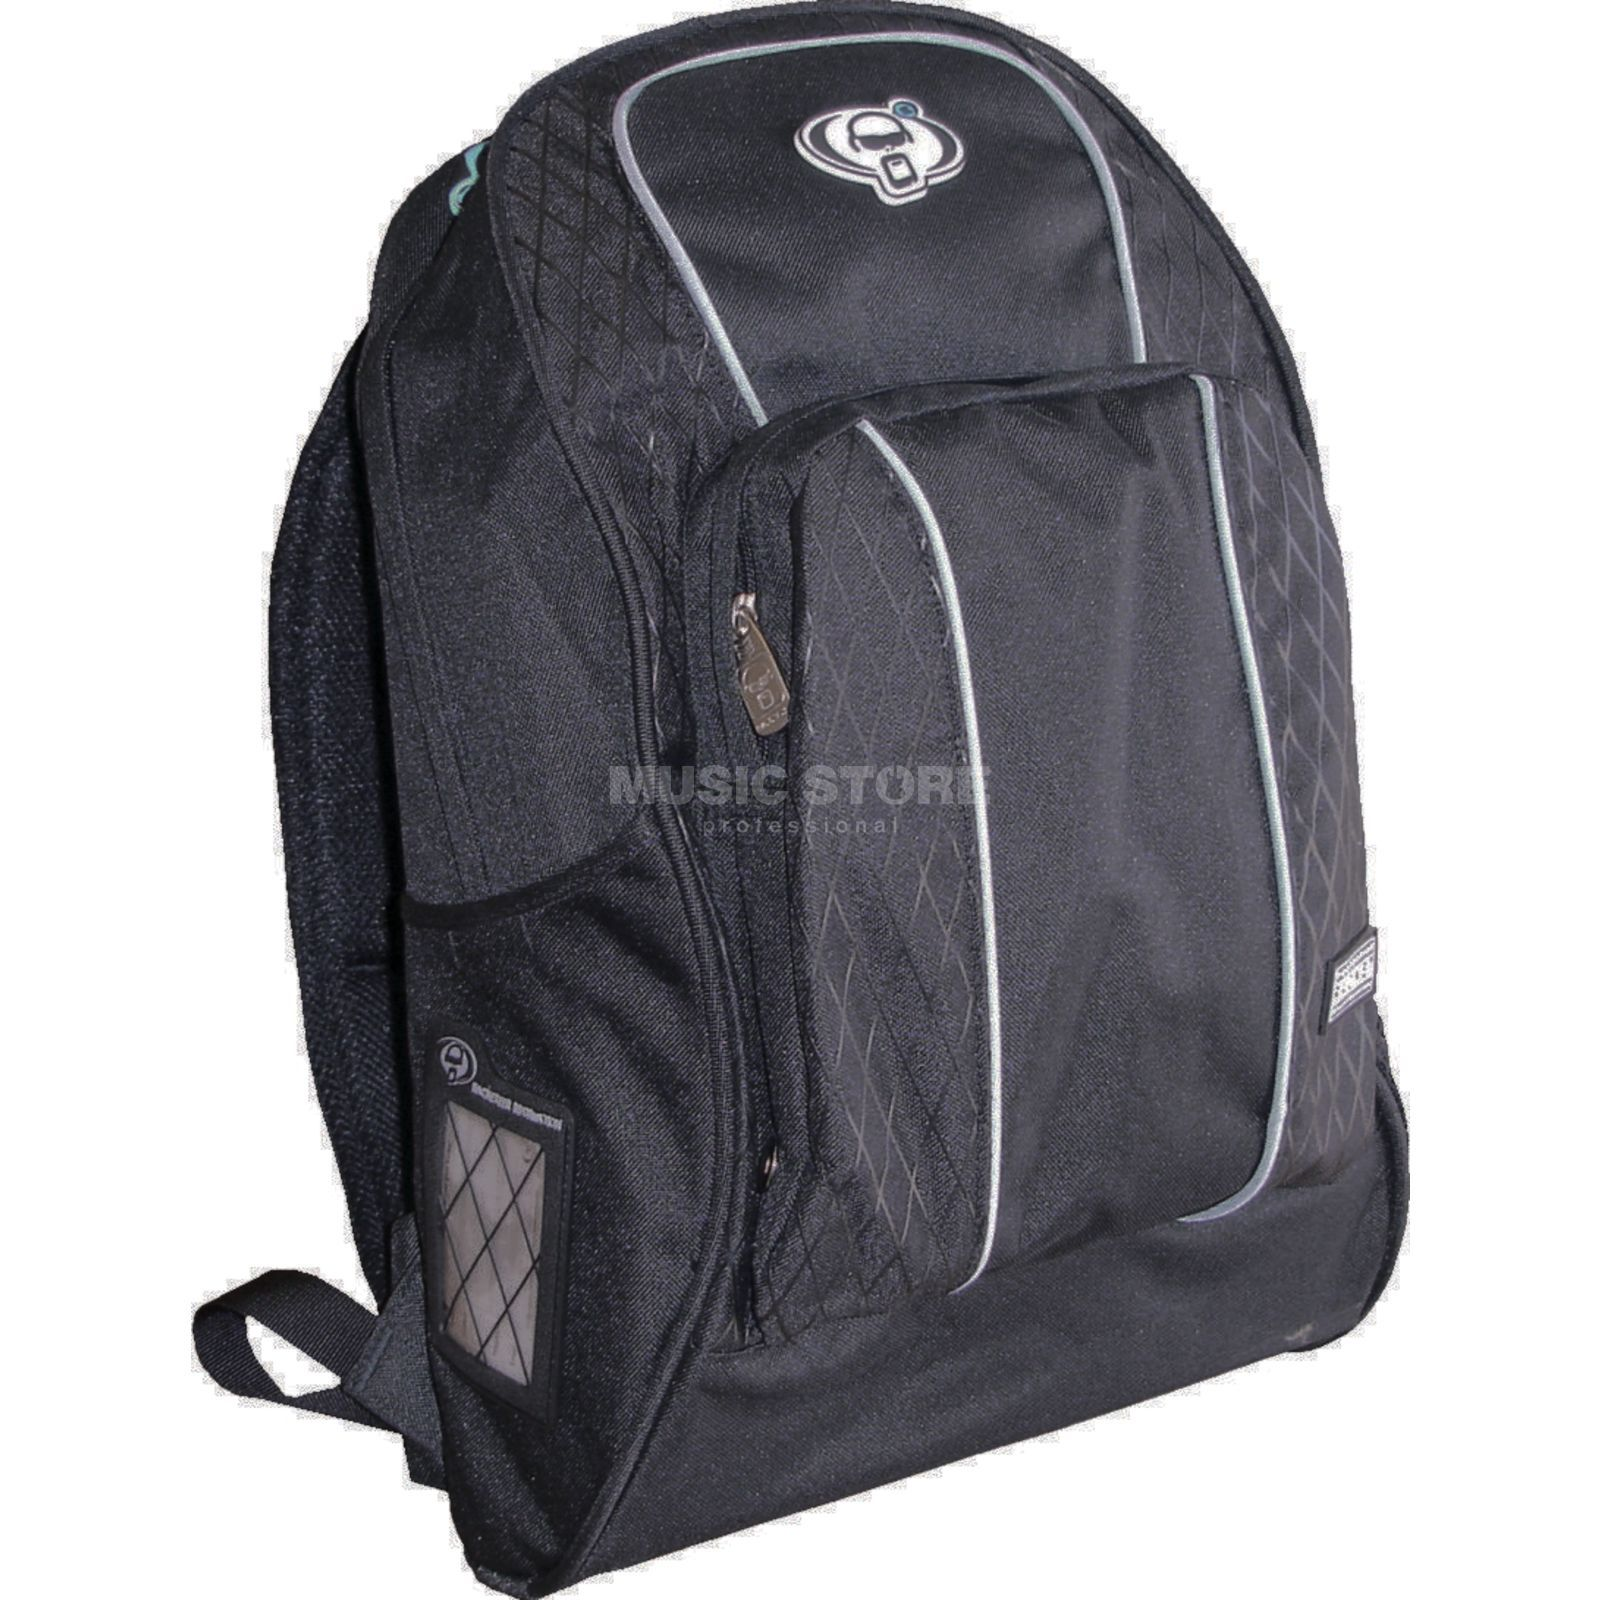 "Protection Racket Rucksack ""Streamline"" 9418-00, 30x15x45cm Produktbillede"